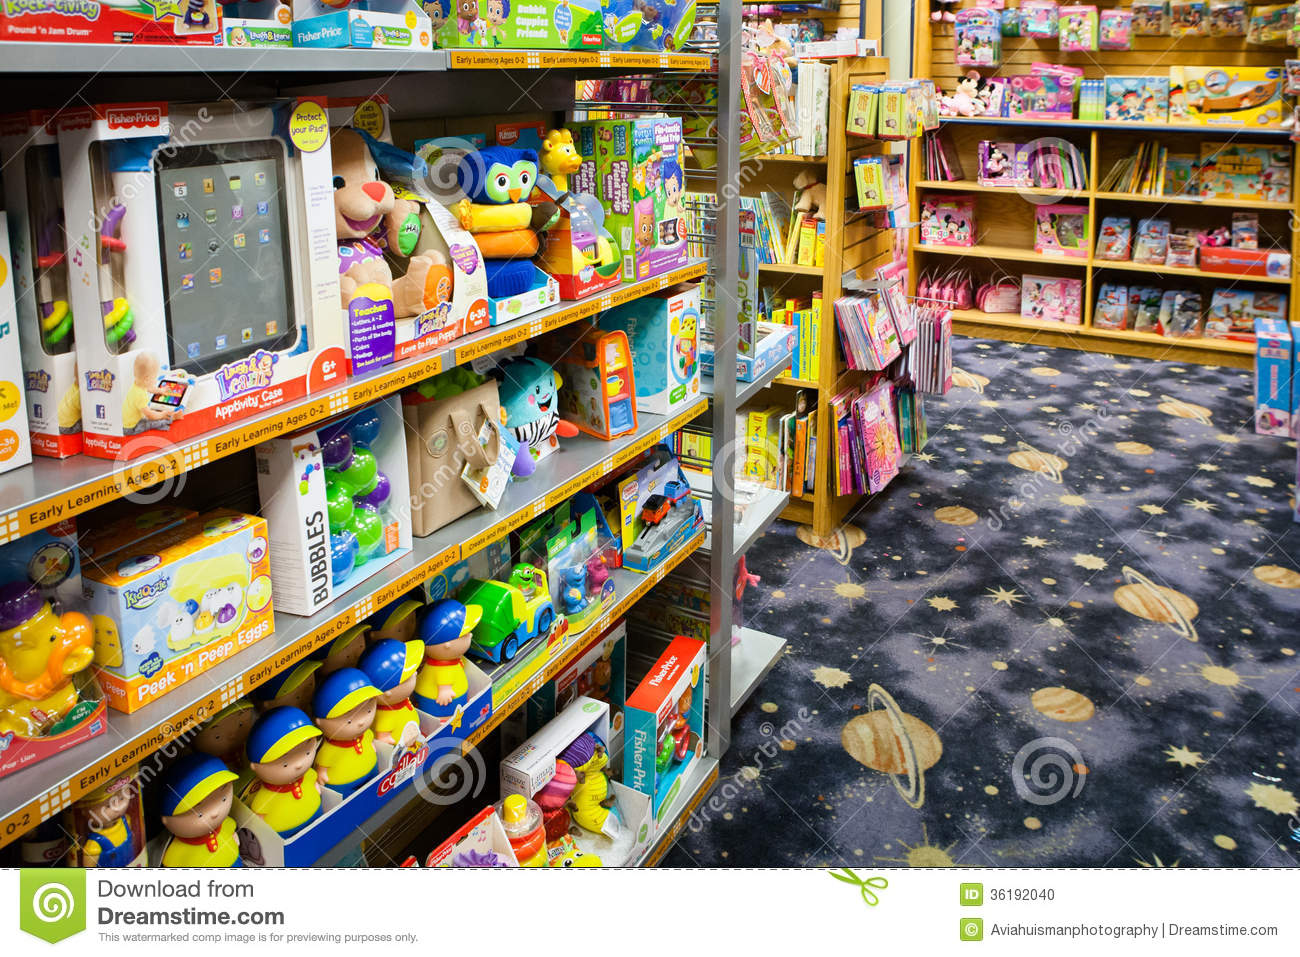 Toys and games market in brazil essay